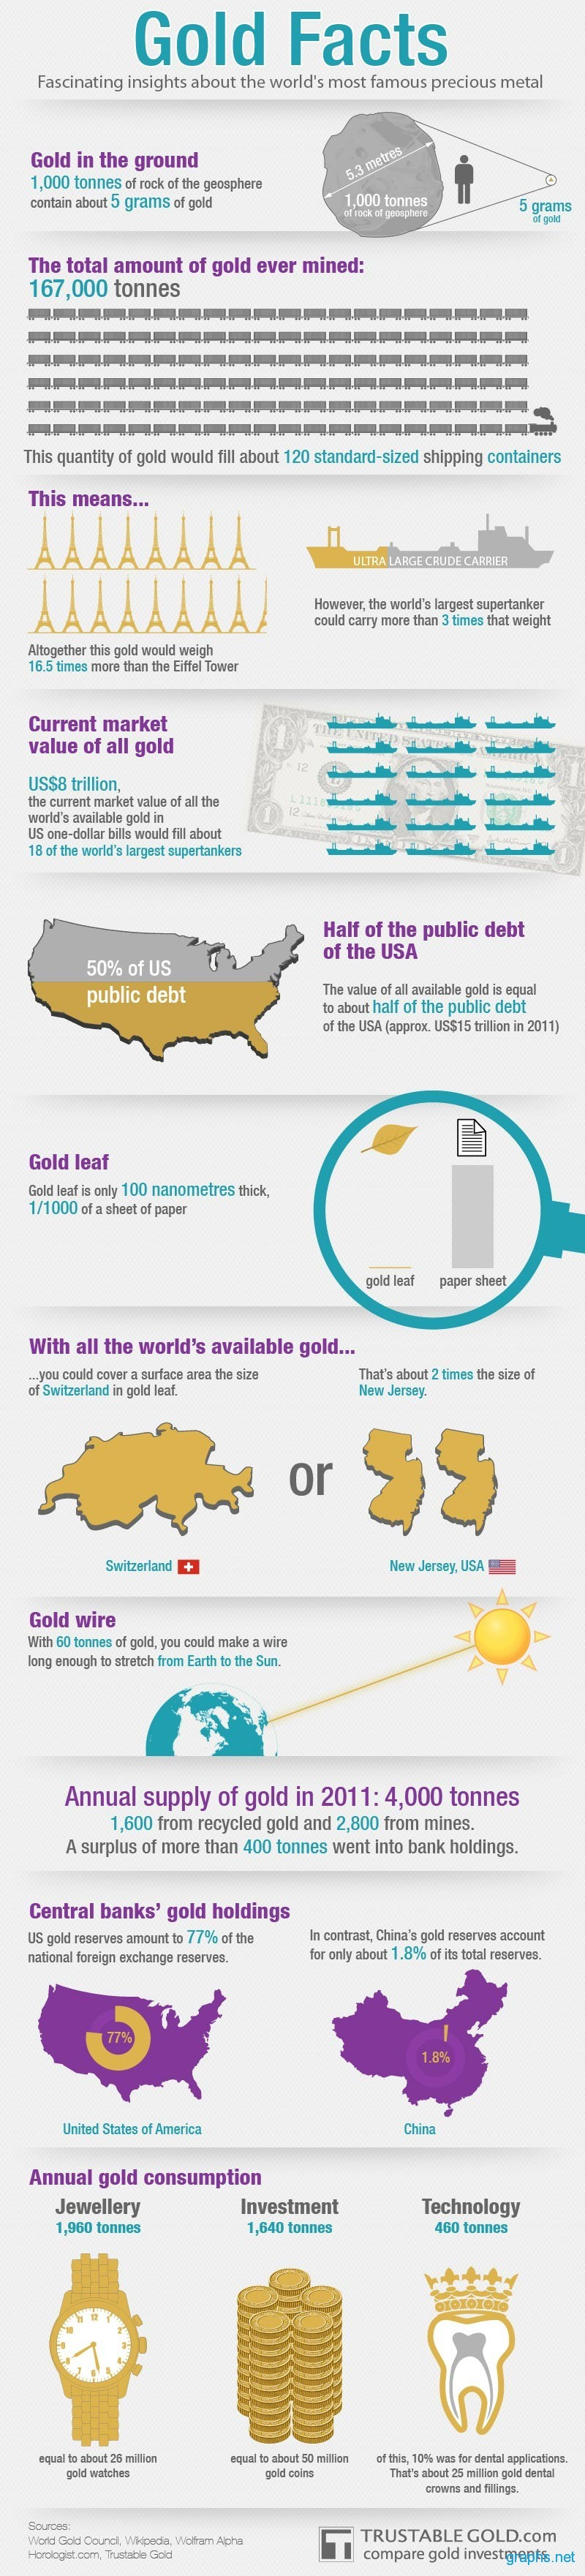 Interesting Gold Facts